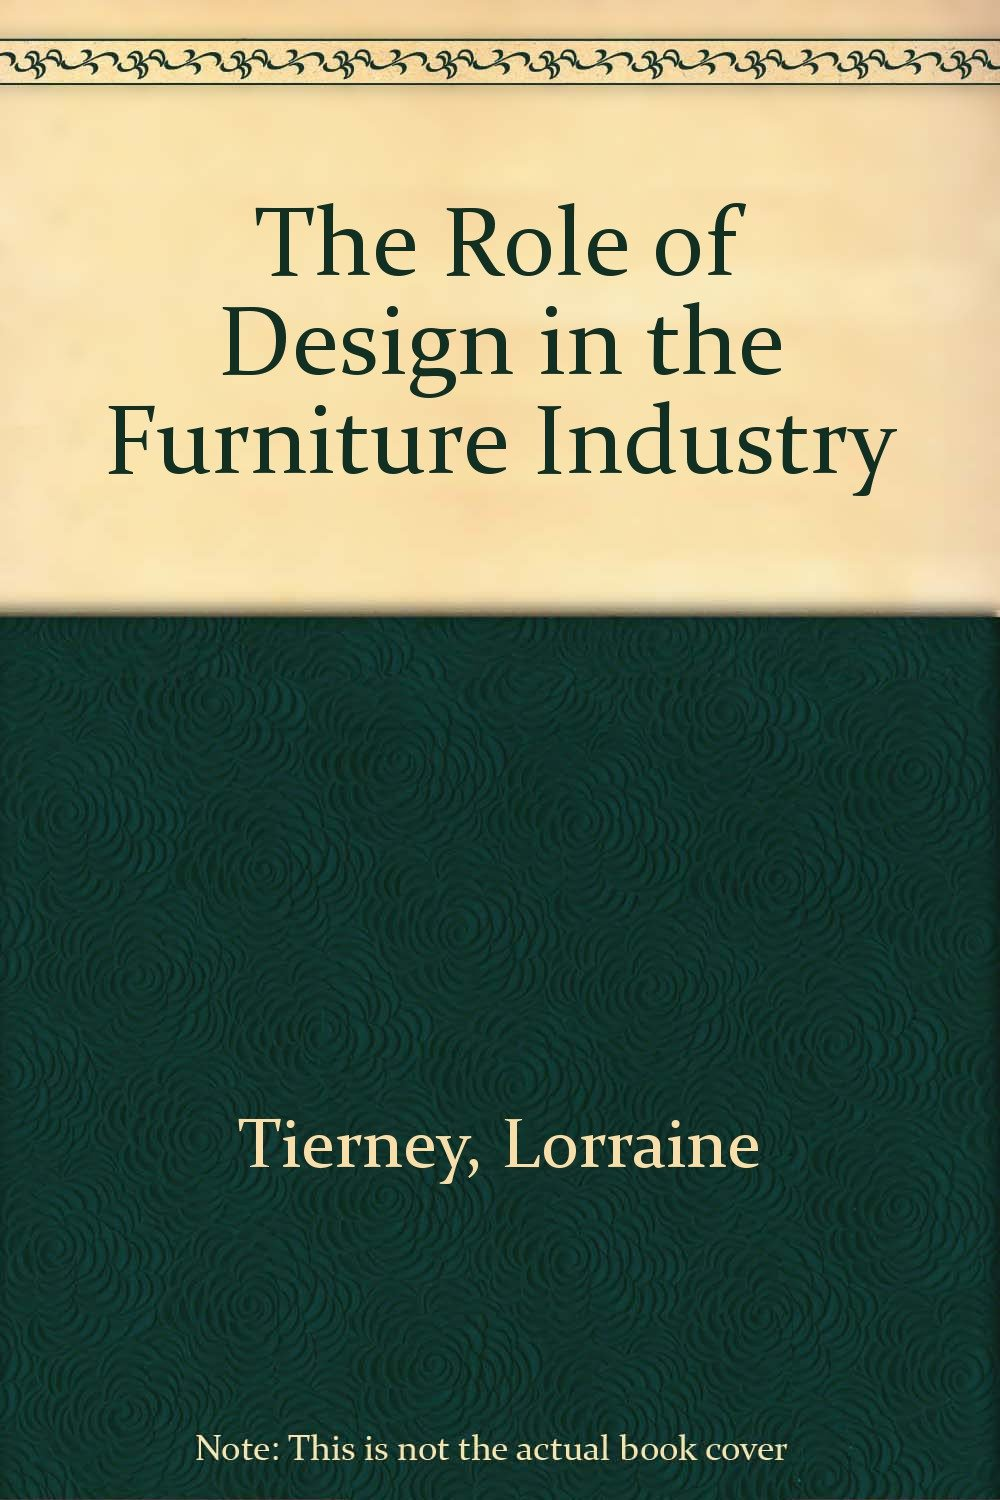 The Role of Design in the Furniture Industry